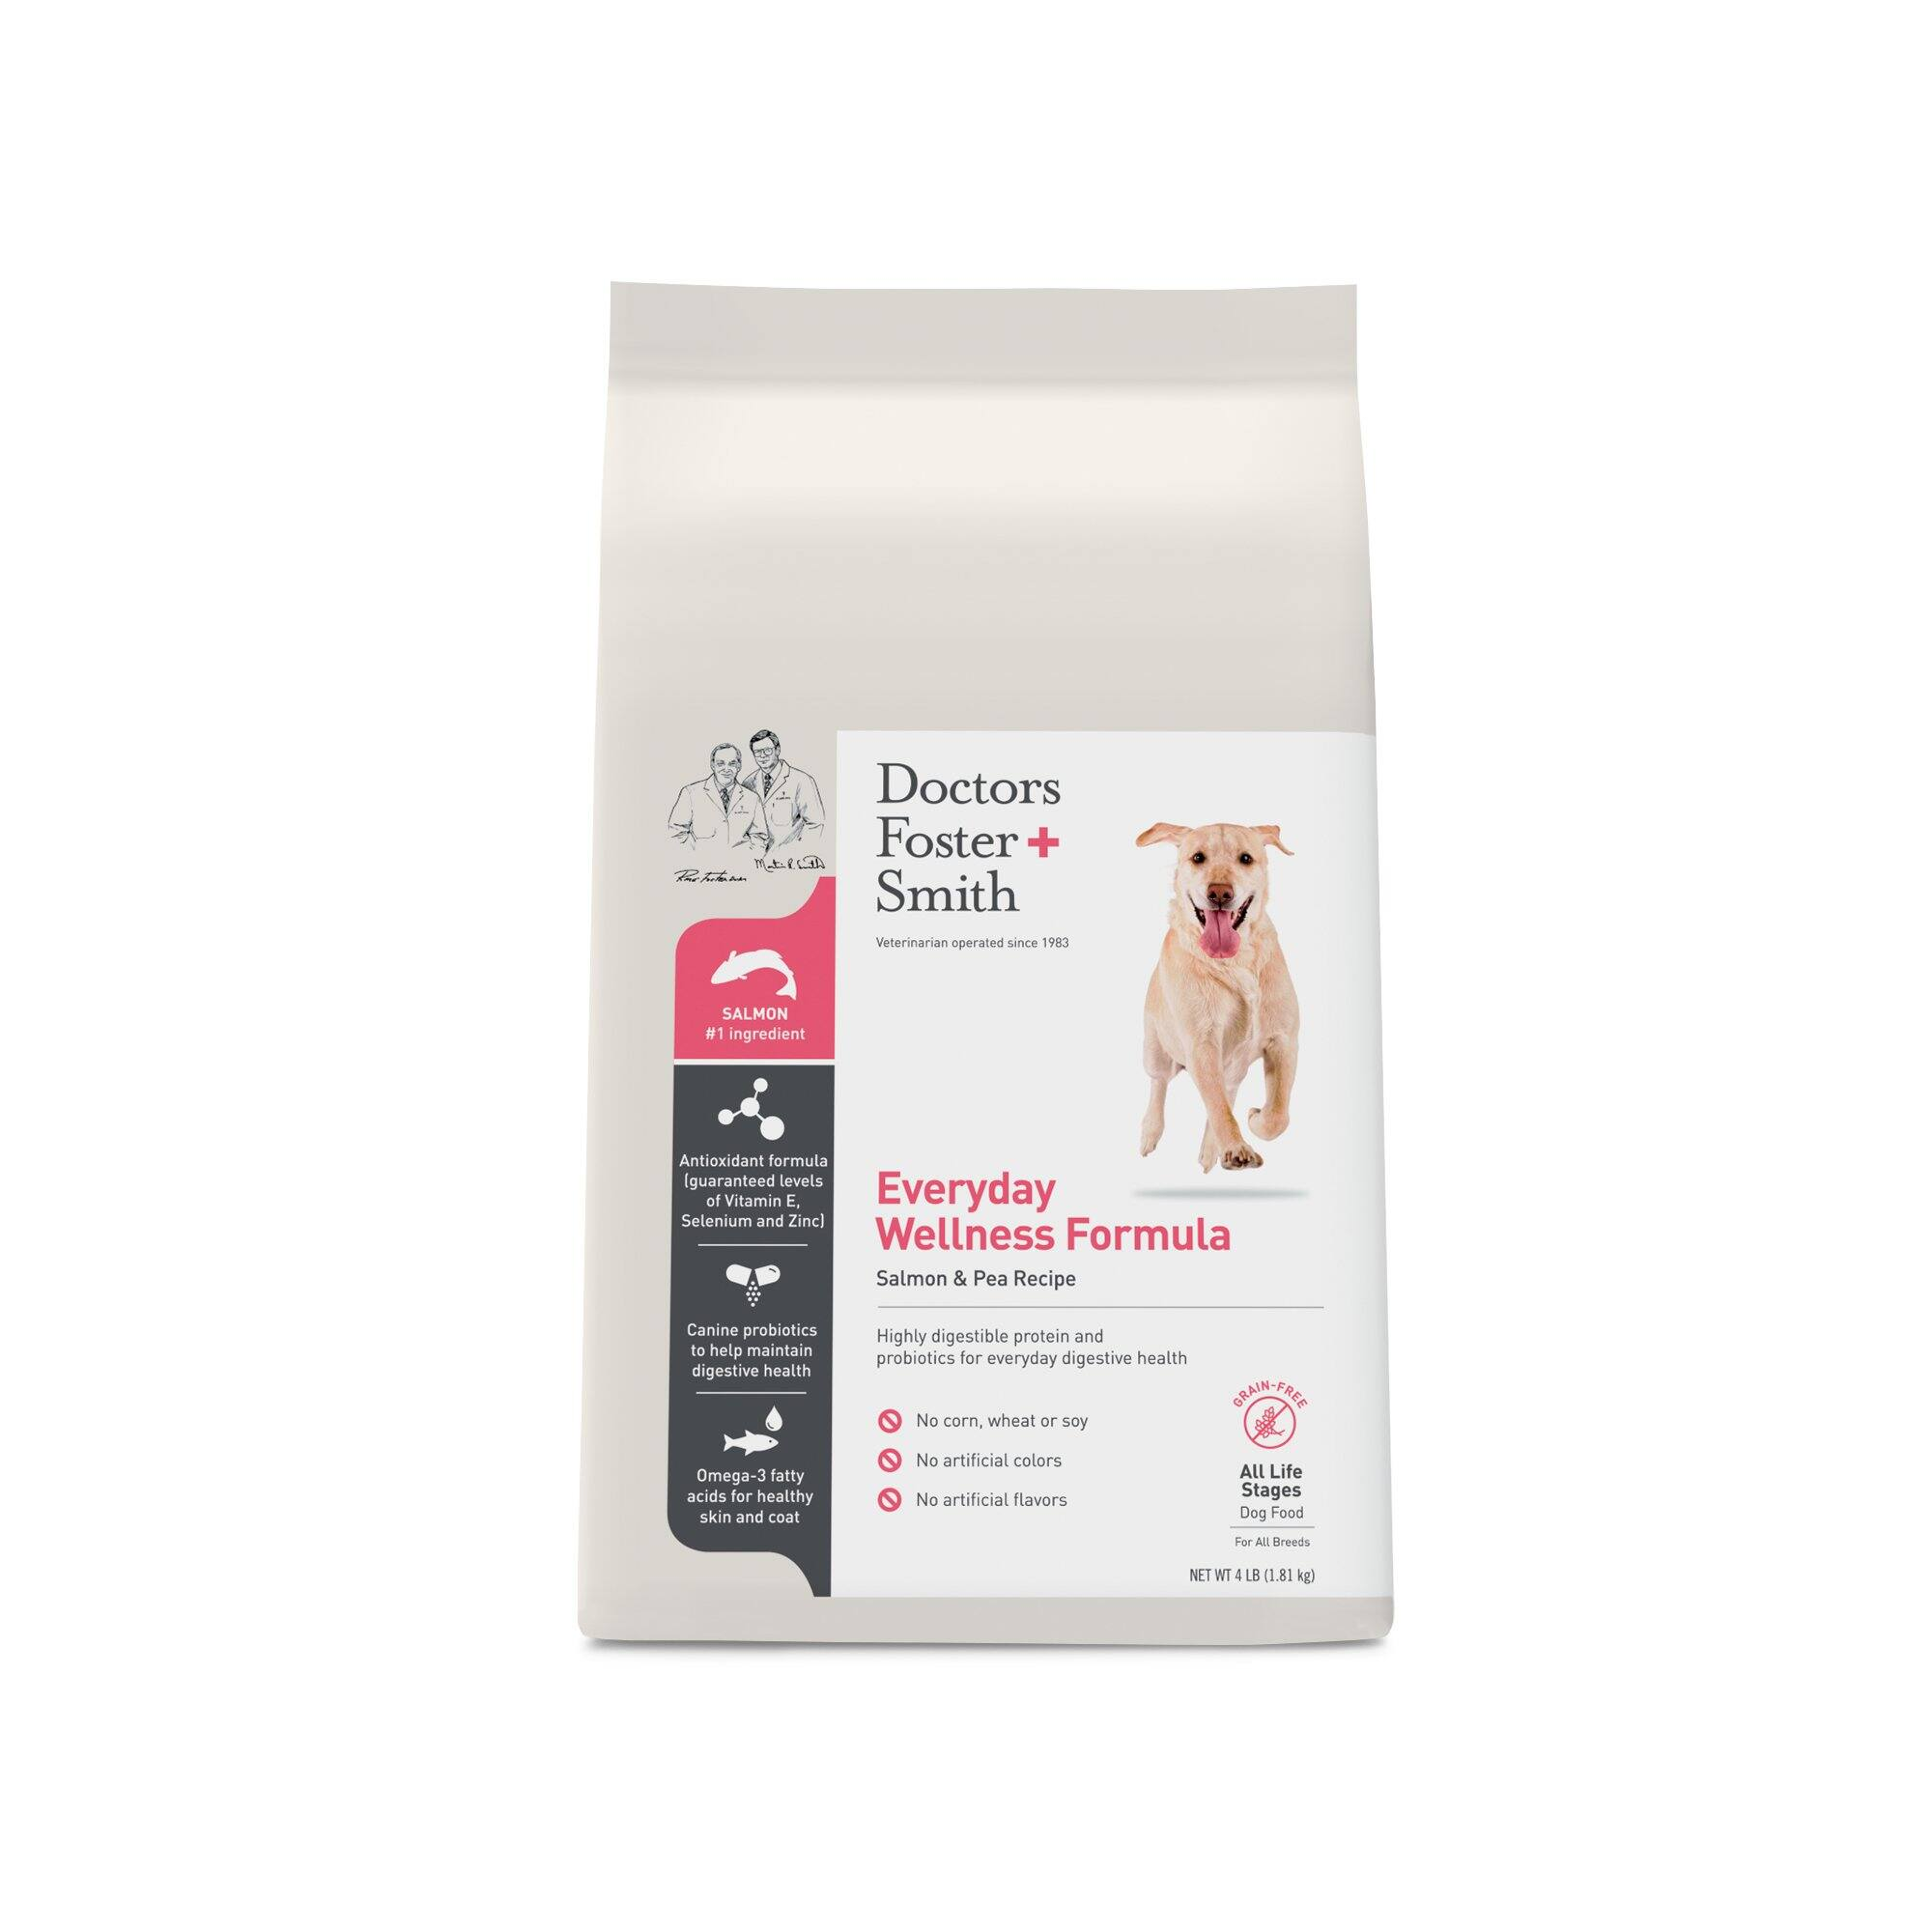 4lb Doctors Foster + Smith Grain Free Everyday Wellness Dog Food (Various) $1.99 Shipped